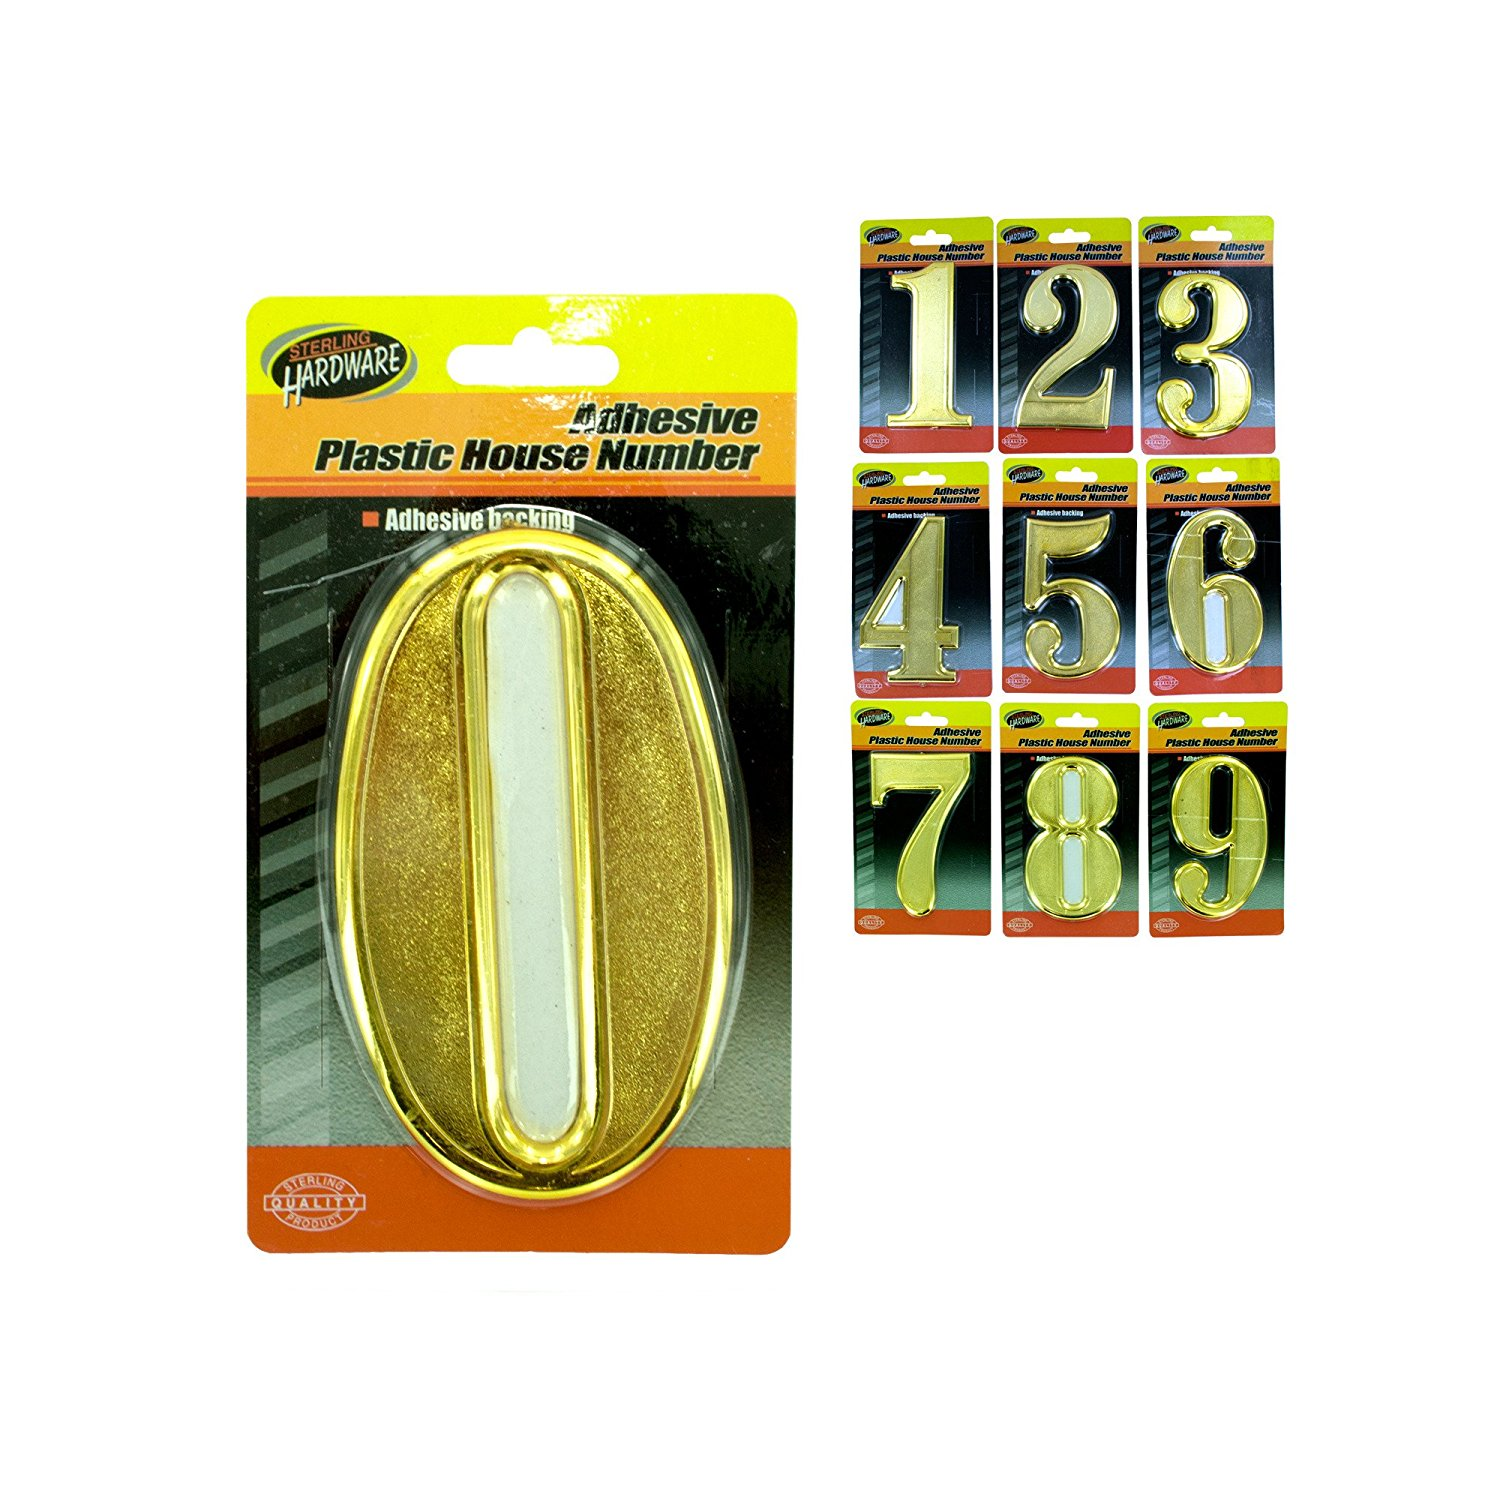 123-Wholesale - Set of 36 Adhesive Plastic House Numbers - Hardware Signs